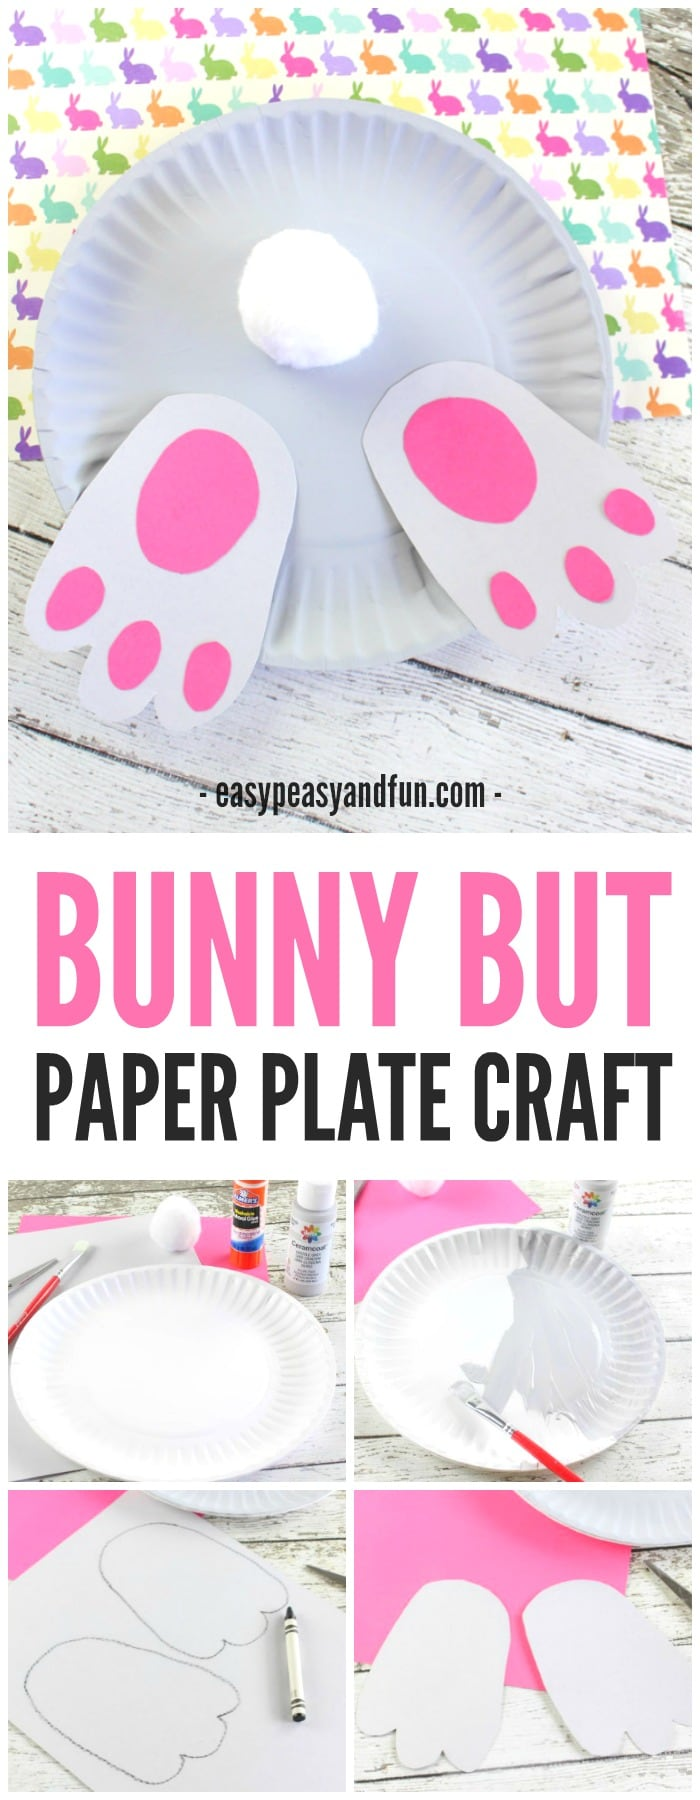 Bunny Butt Paper Plate Craft